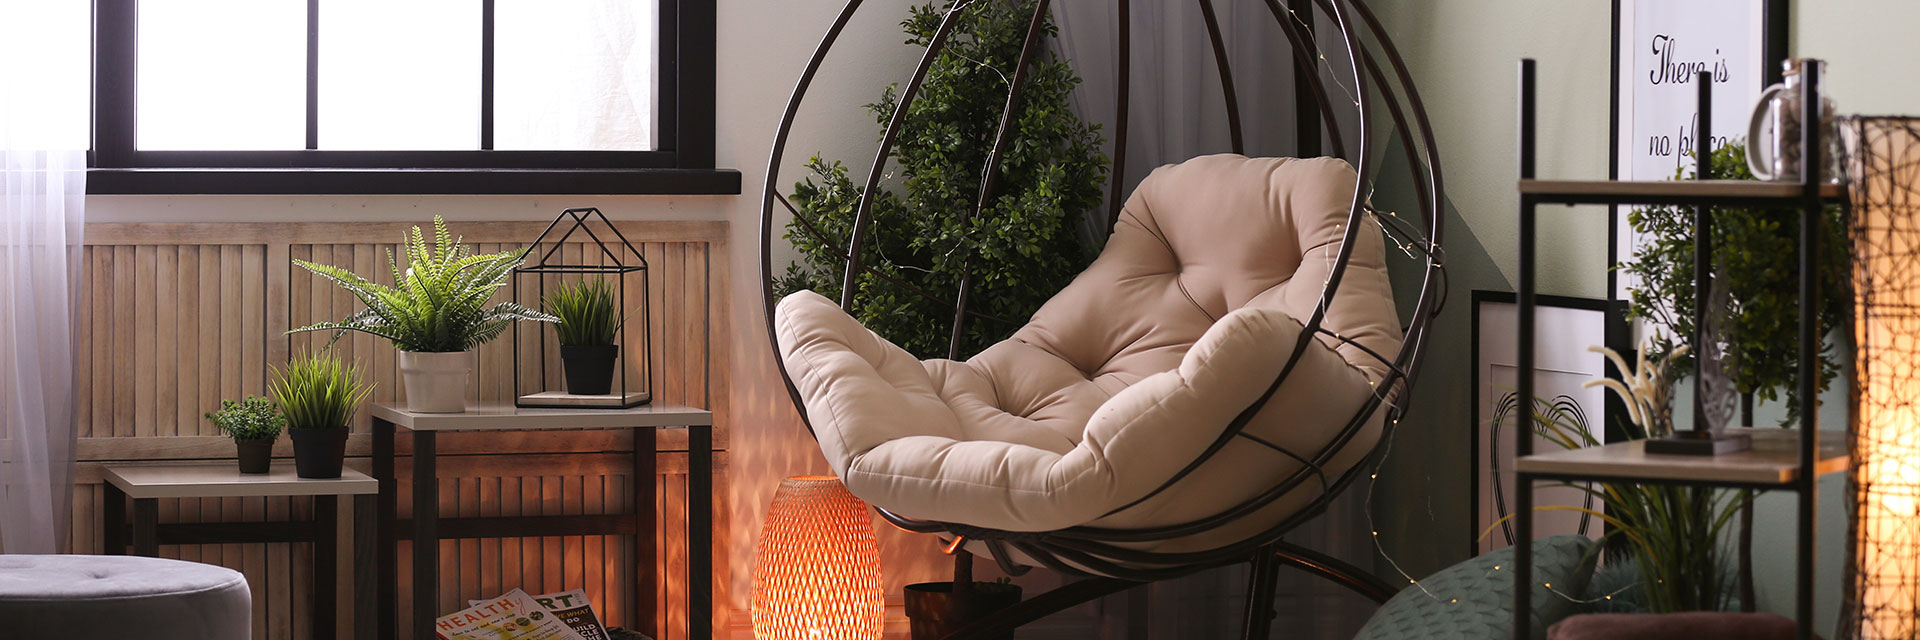 https://listassisters.com/wp-content/uploads/2018/12/Homepage2-Swing-Chair.jpg